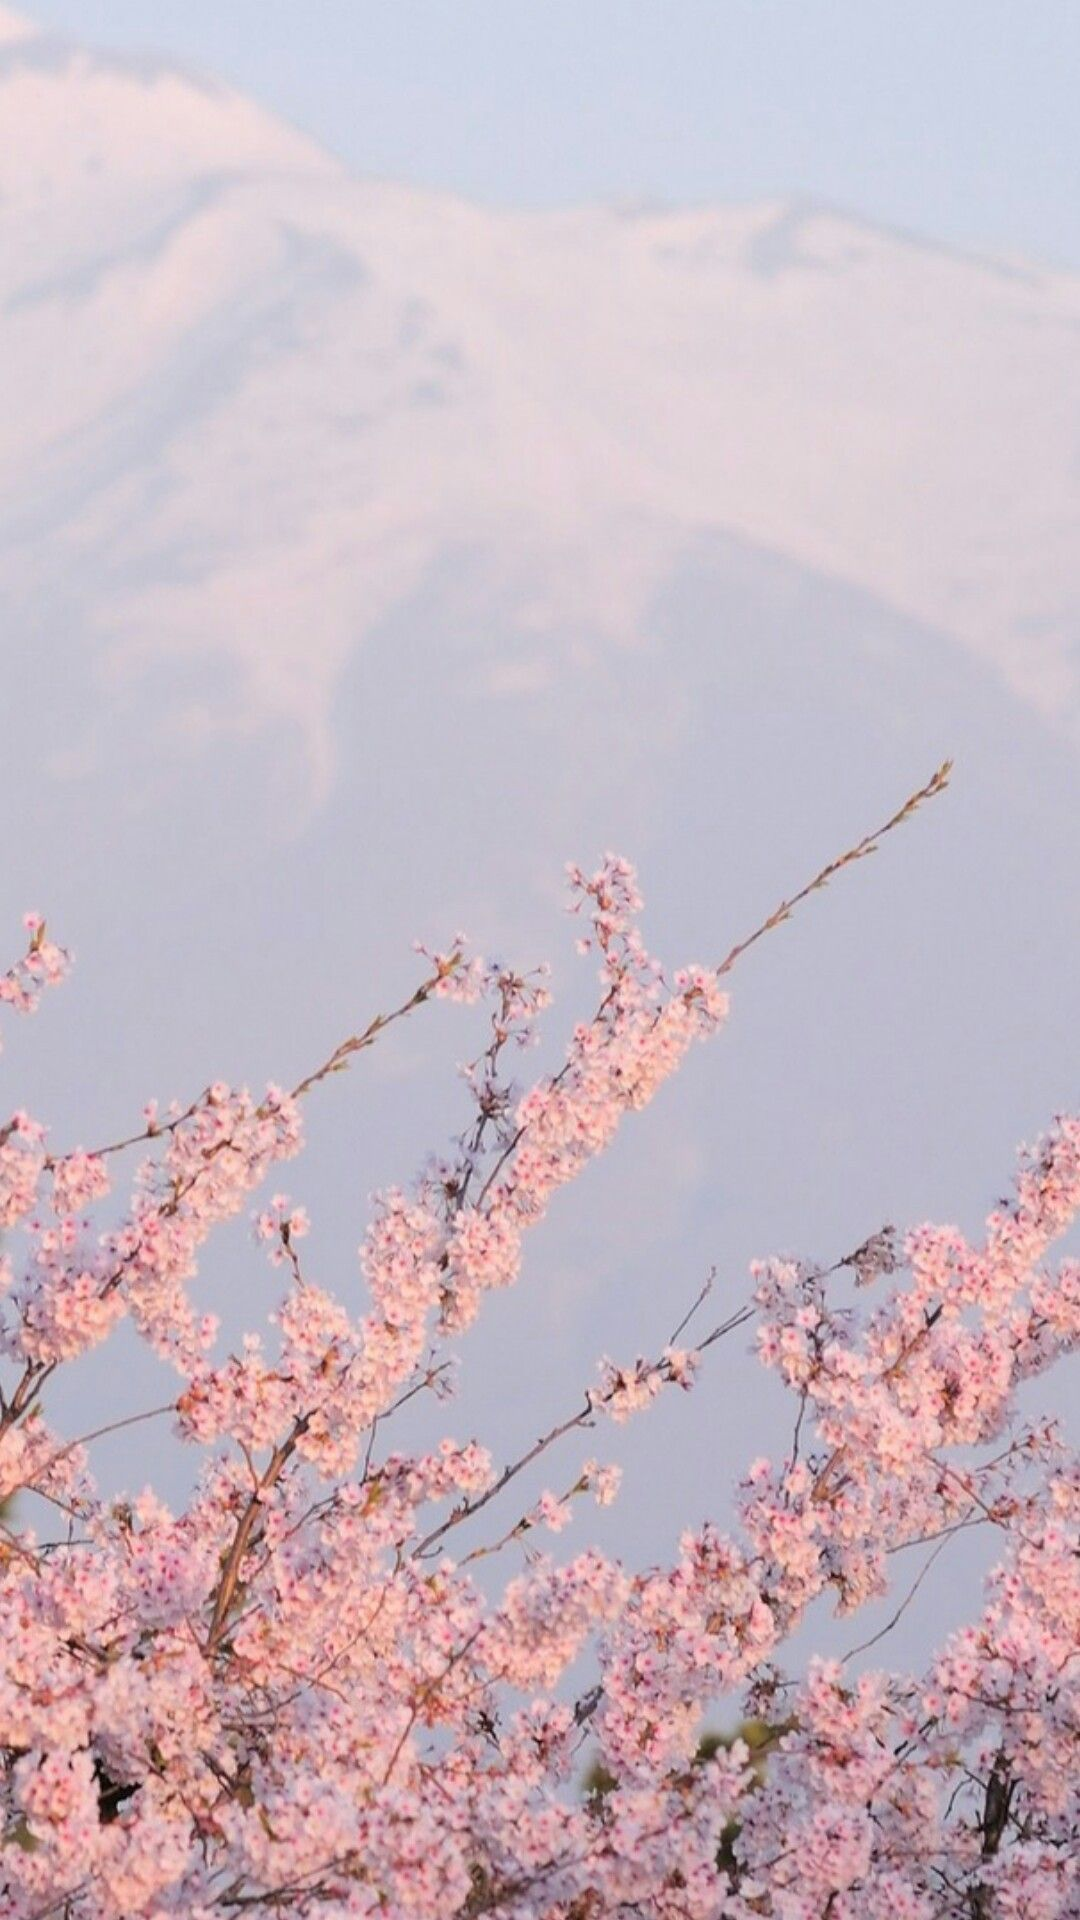 Sakura Wallpaper Tumblr Aesthetic Backgrounds Pastel Pink